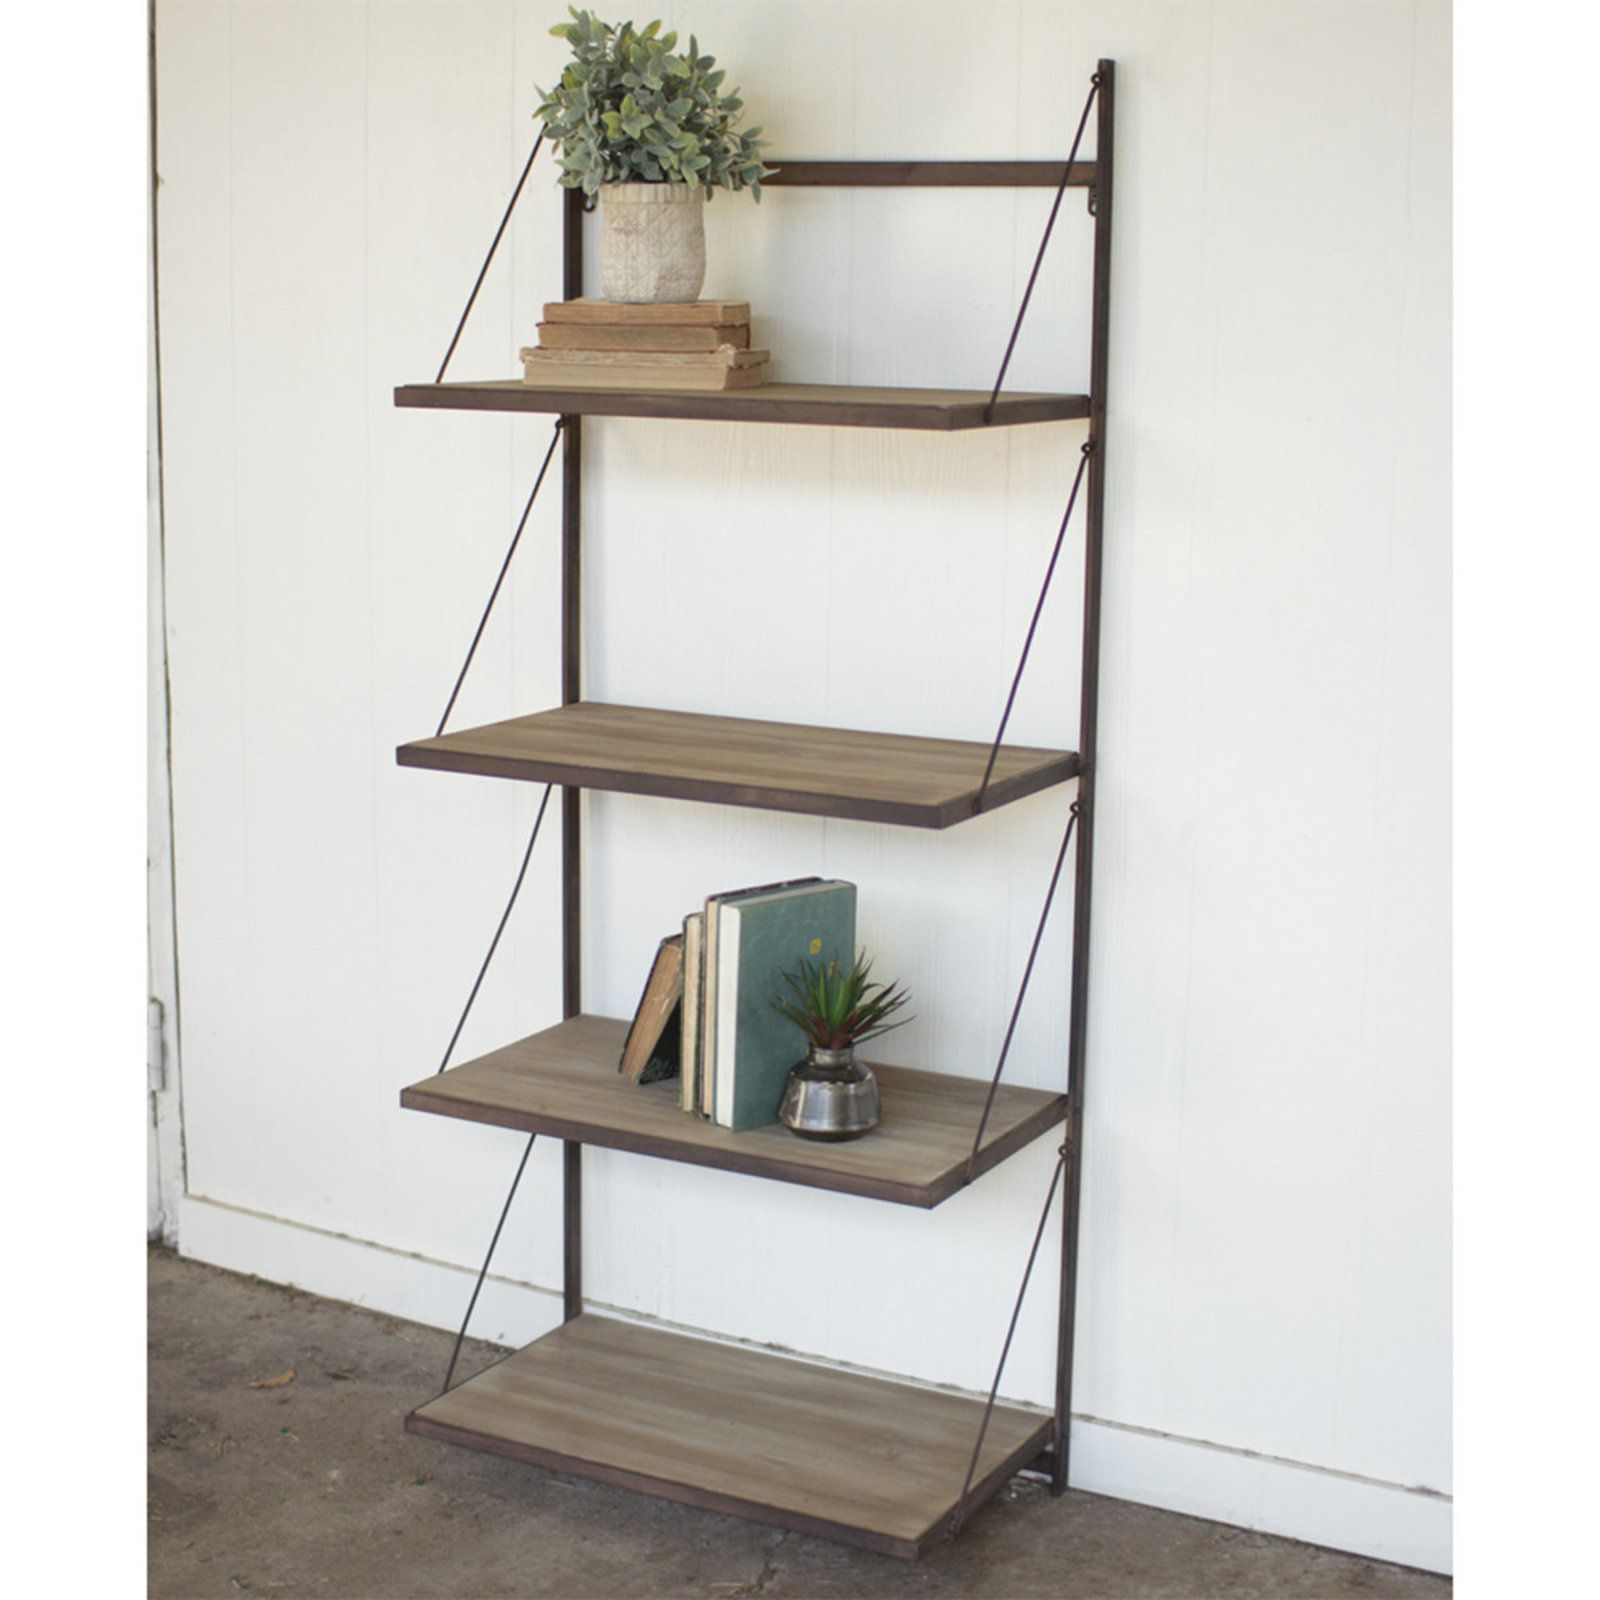 Wall Mounted Suspension Shelves | Dave's Desk | Rustic wall